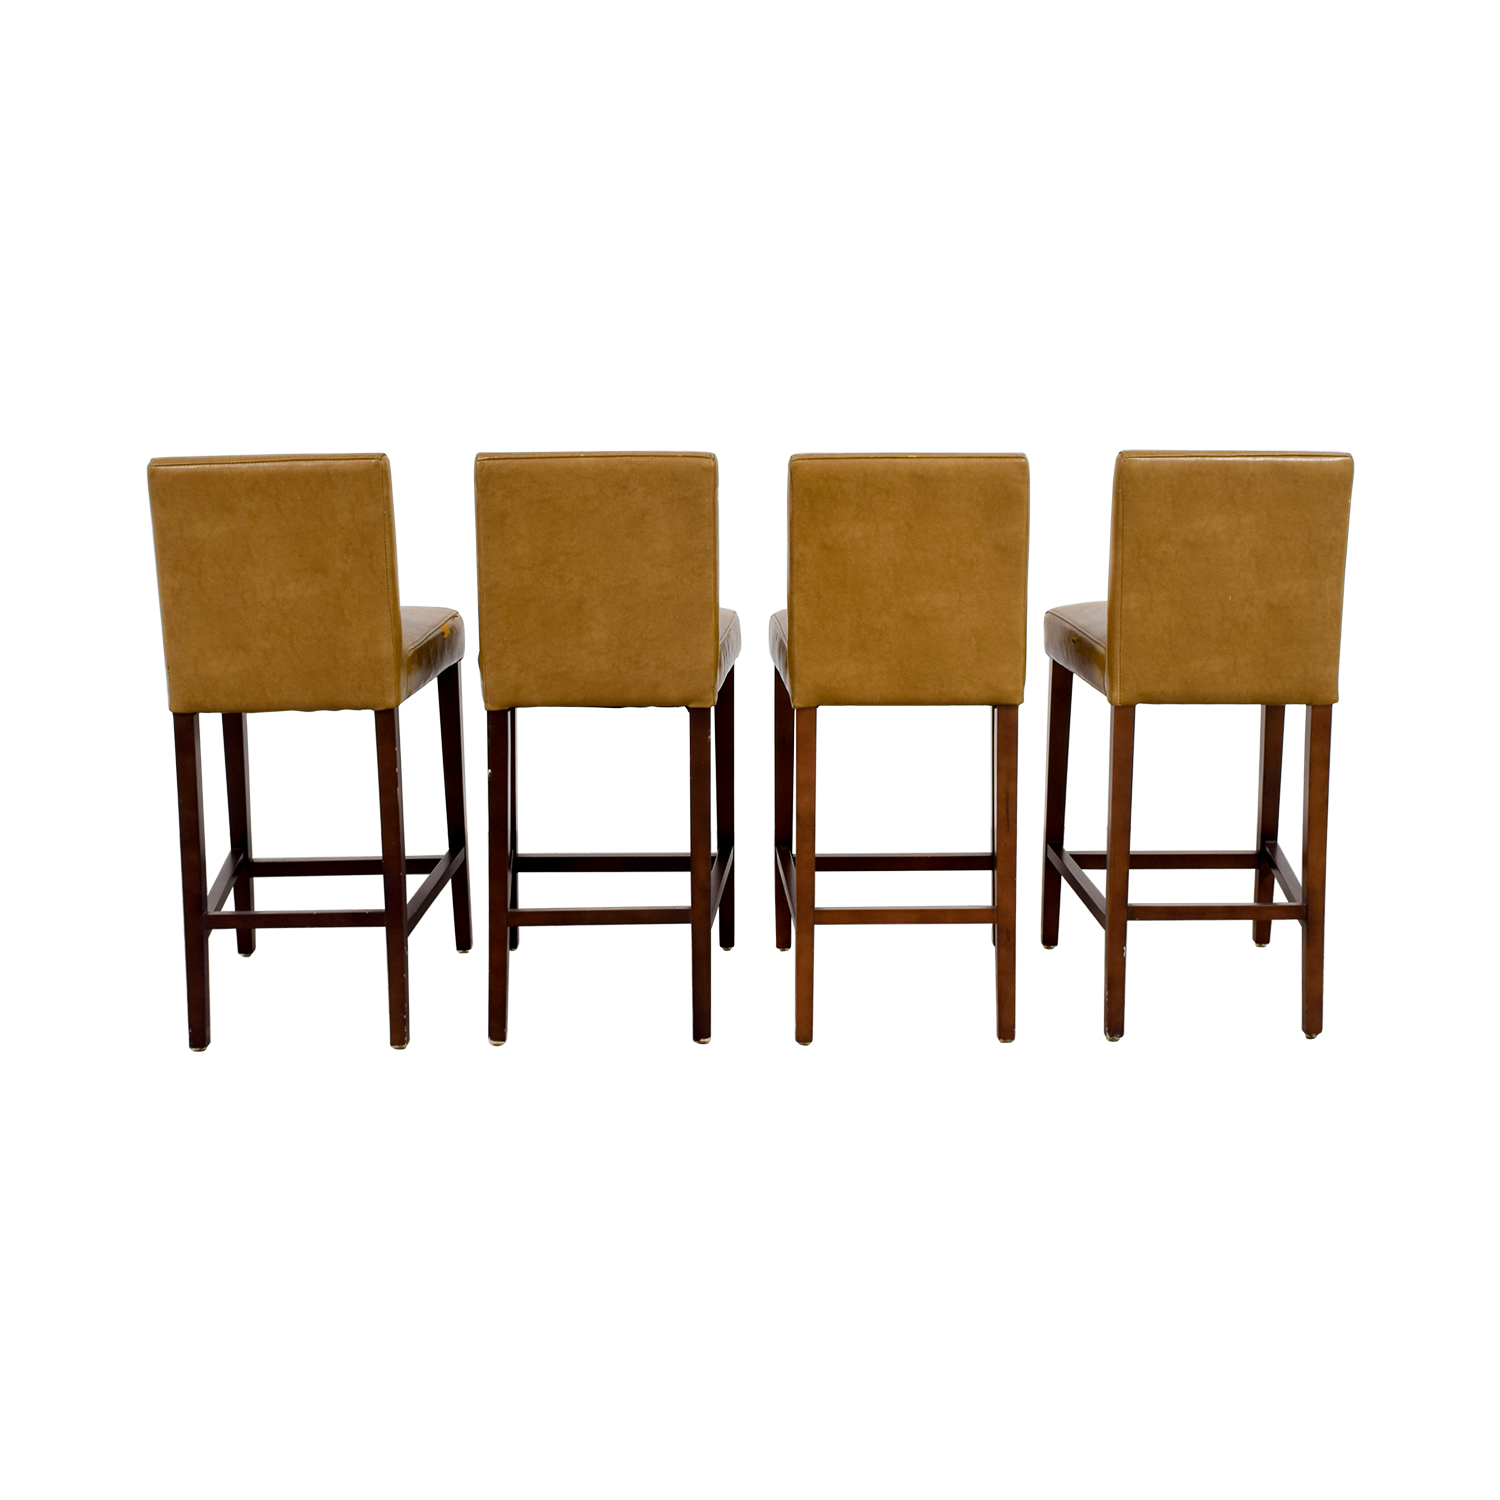 West Elm West Elm Faux Leather Stools nyc